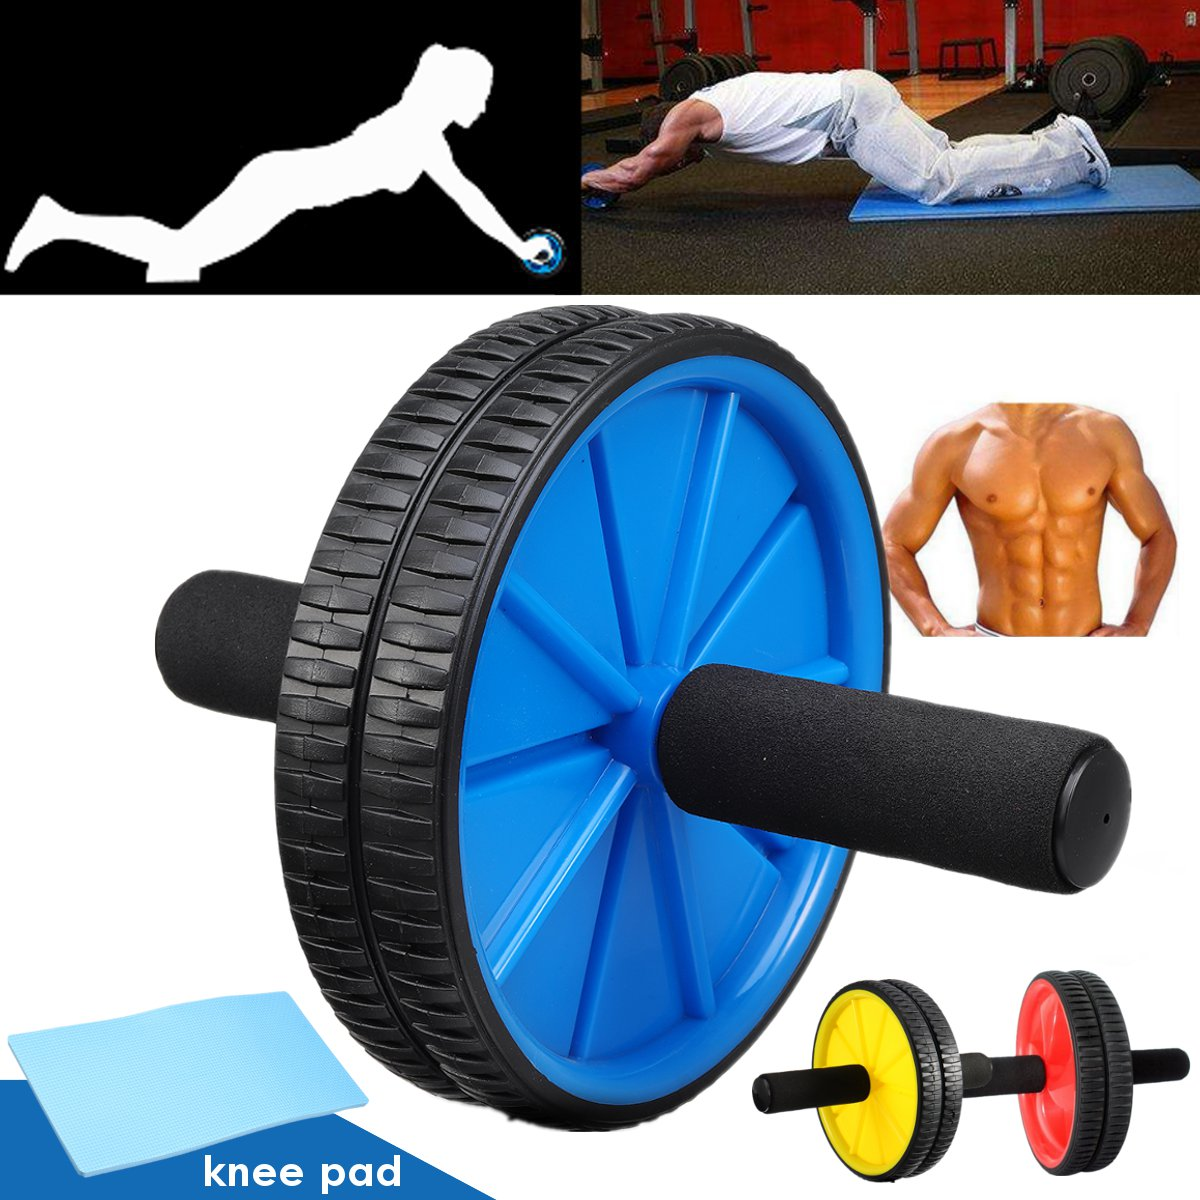 Body Fitness Dual Wheel Abdominal Training Roller Home Gym Arm Waist Exerciser Pad Fitness Body Building Equipments Ab Rollers image